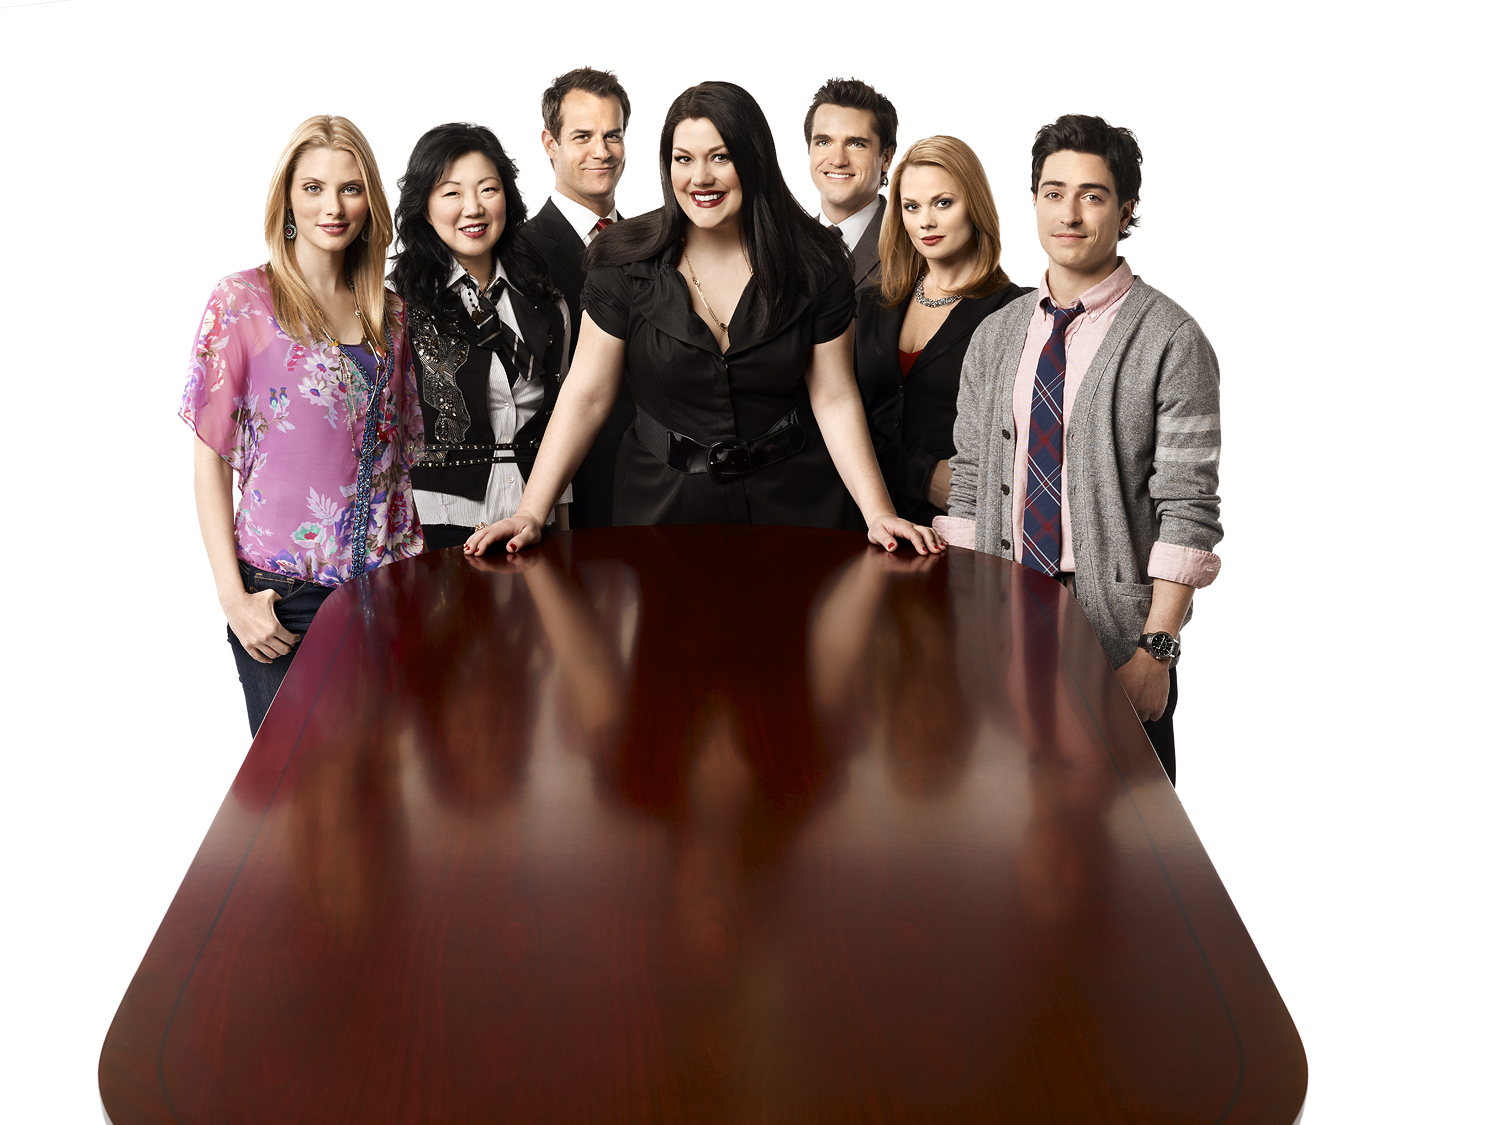 Drop dead diva testing guardian angels in season 4 2012 - Drop dead diva seasons ...